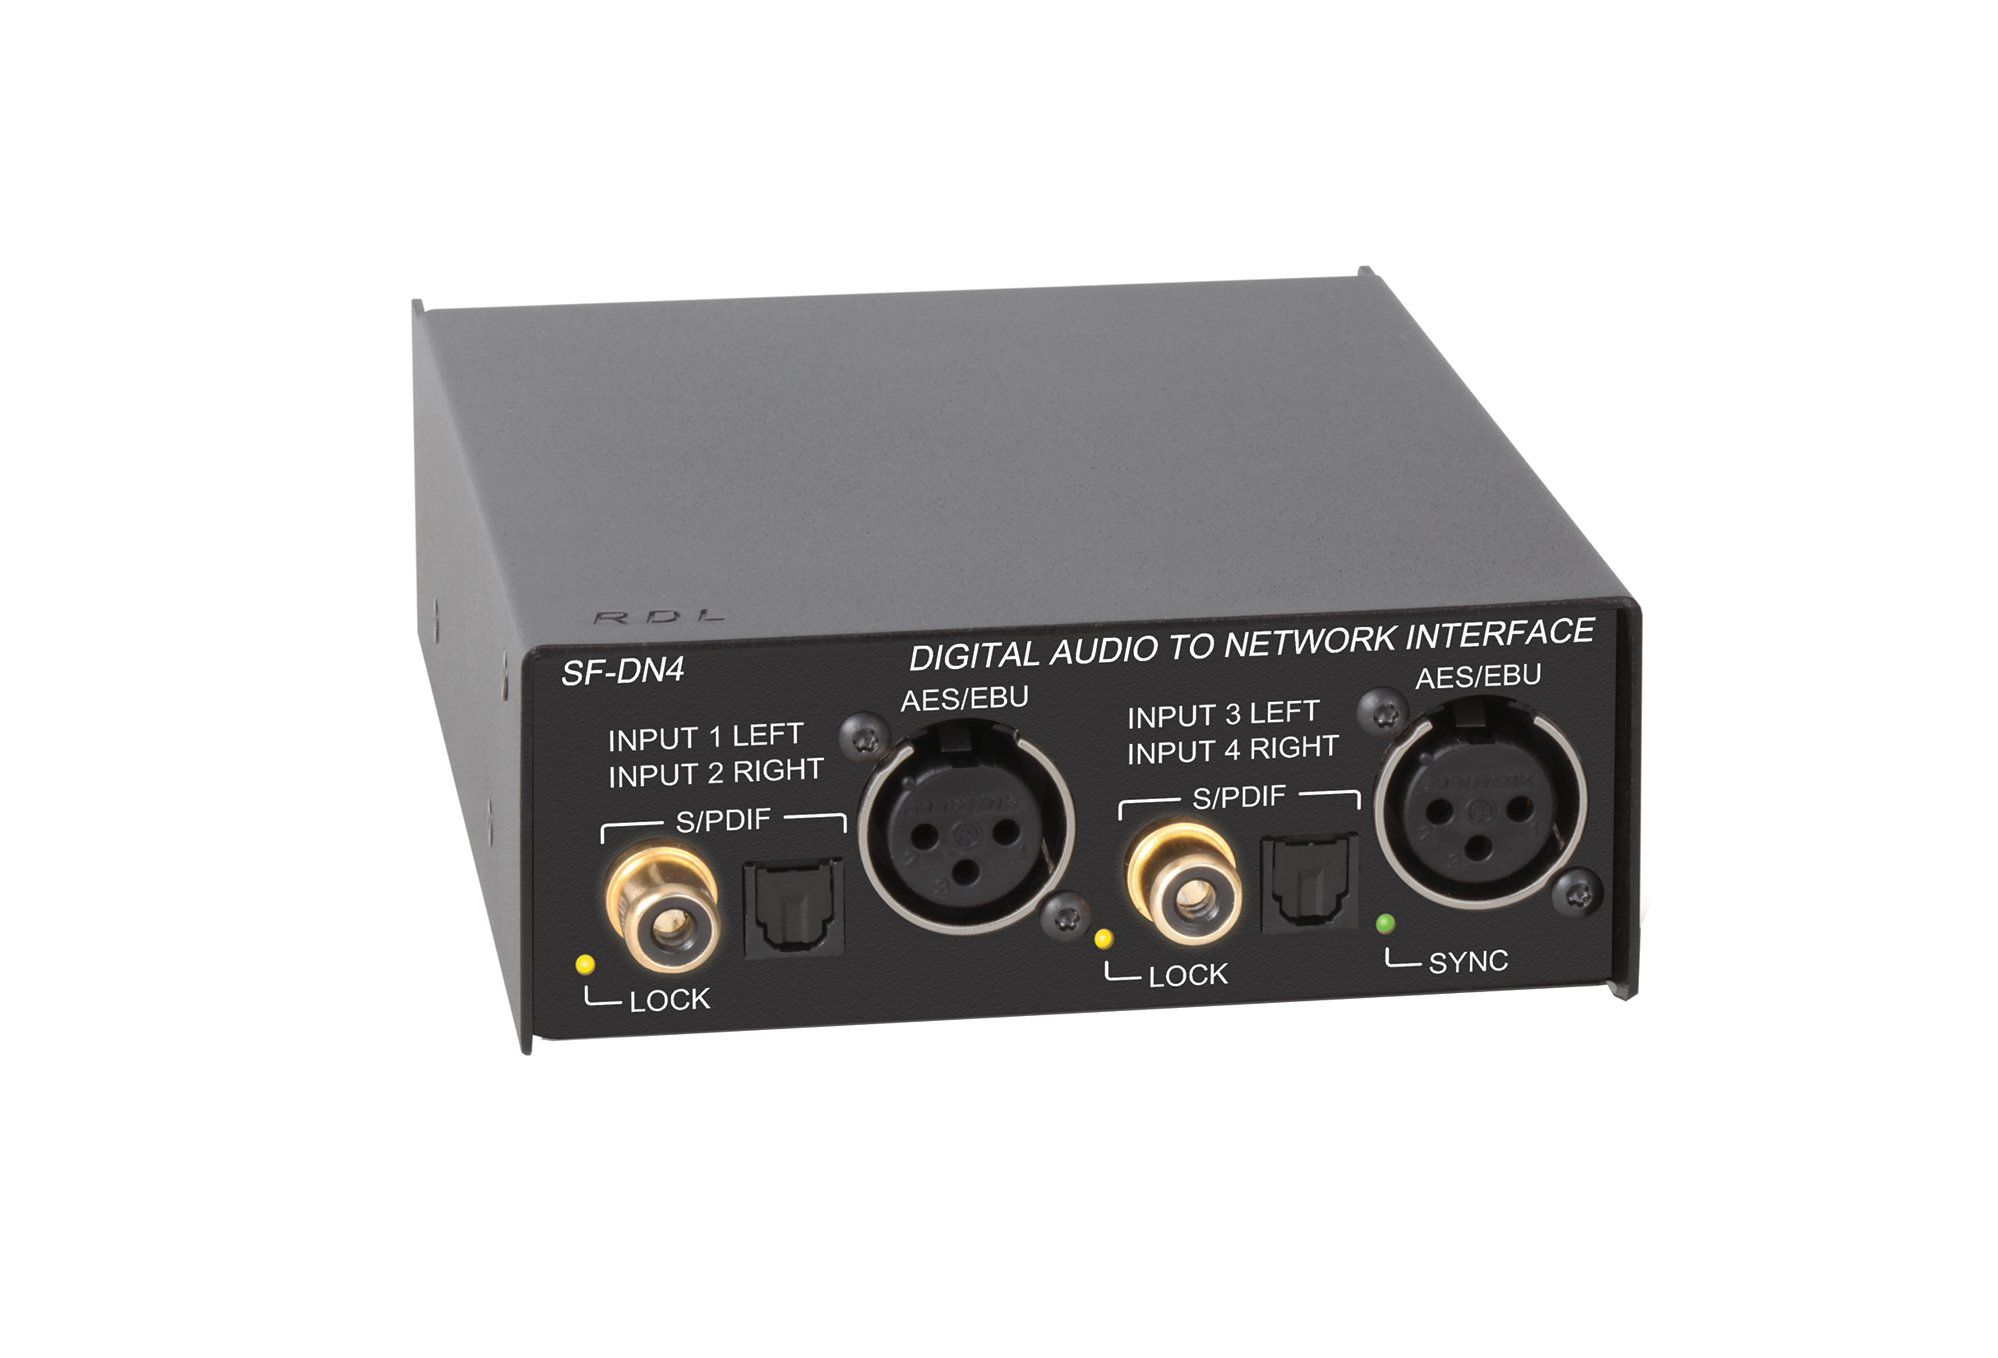 Rdl Sf Dn4 Digital Audio To Network Interface With Dante